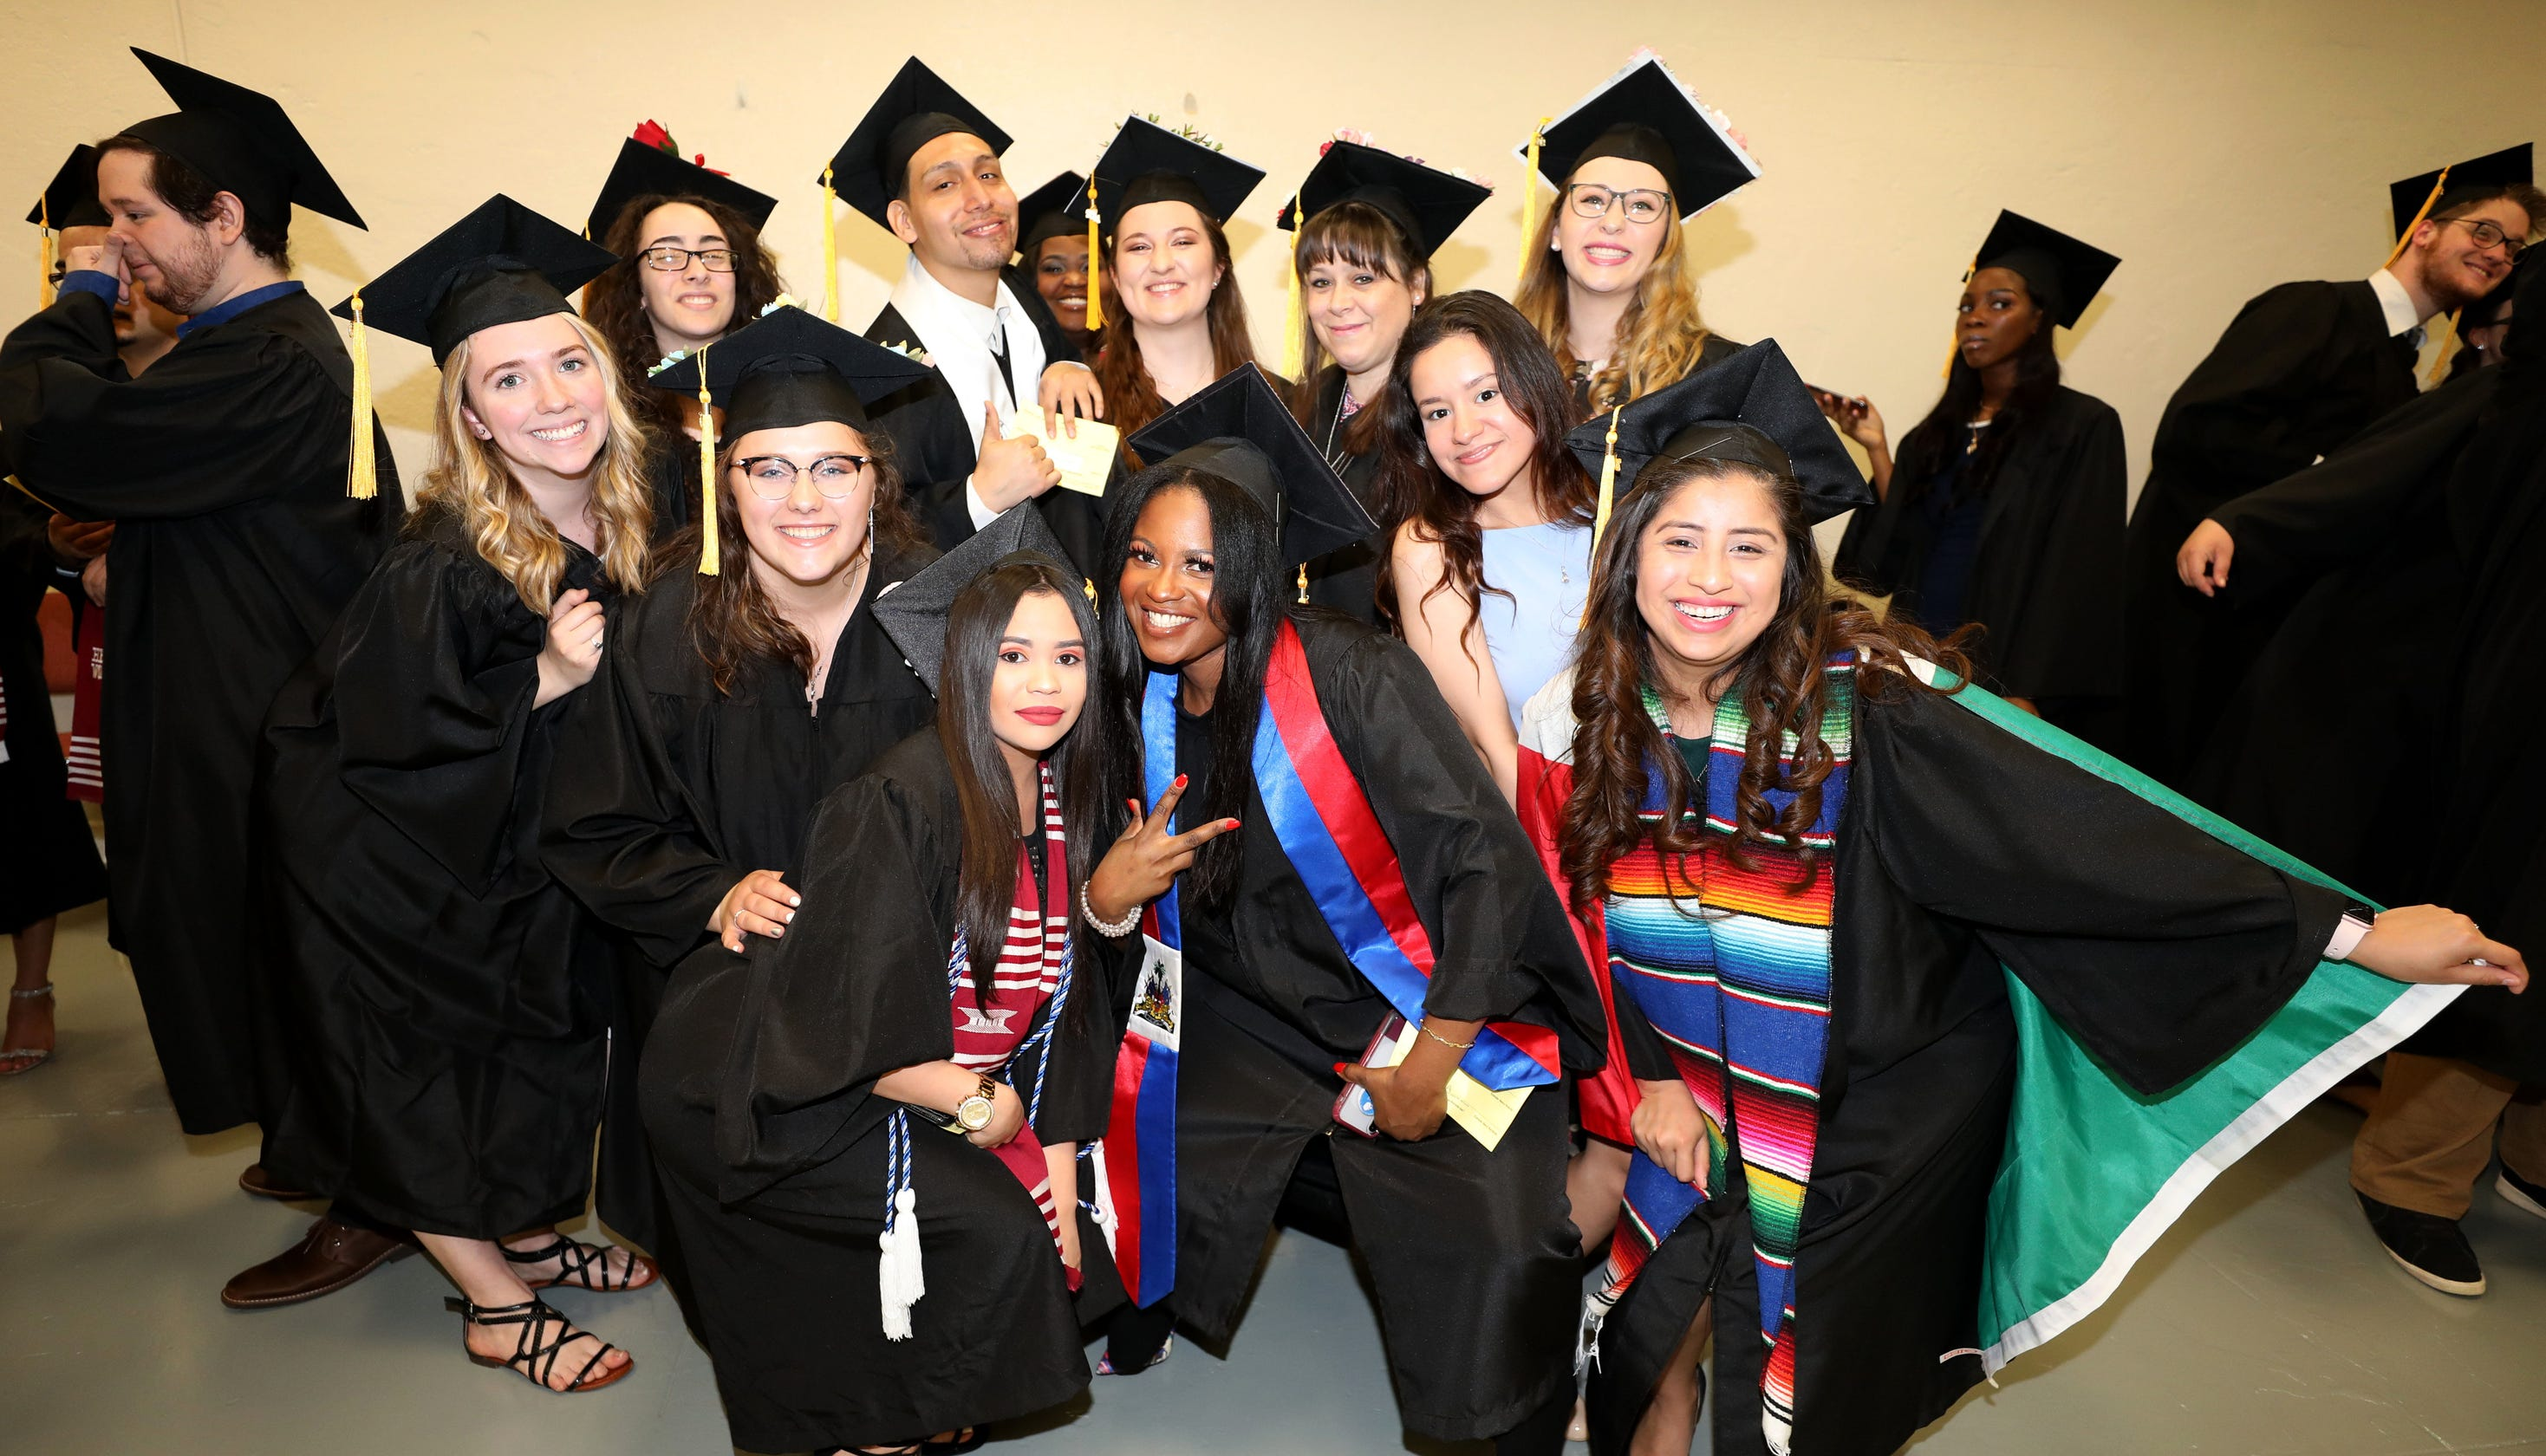 Nyack College Celebrates Its 2019 Class Graduation